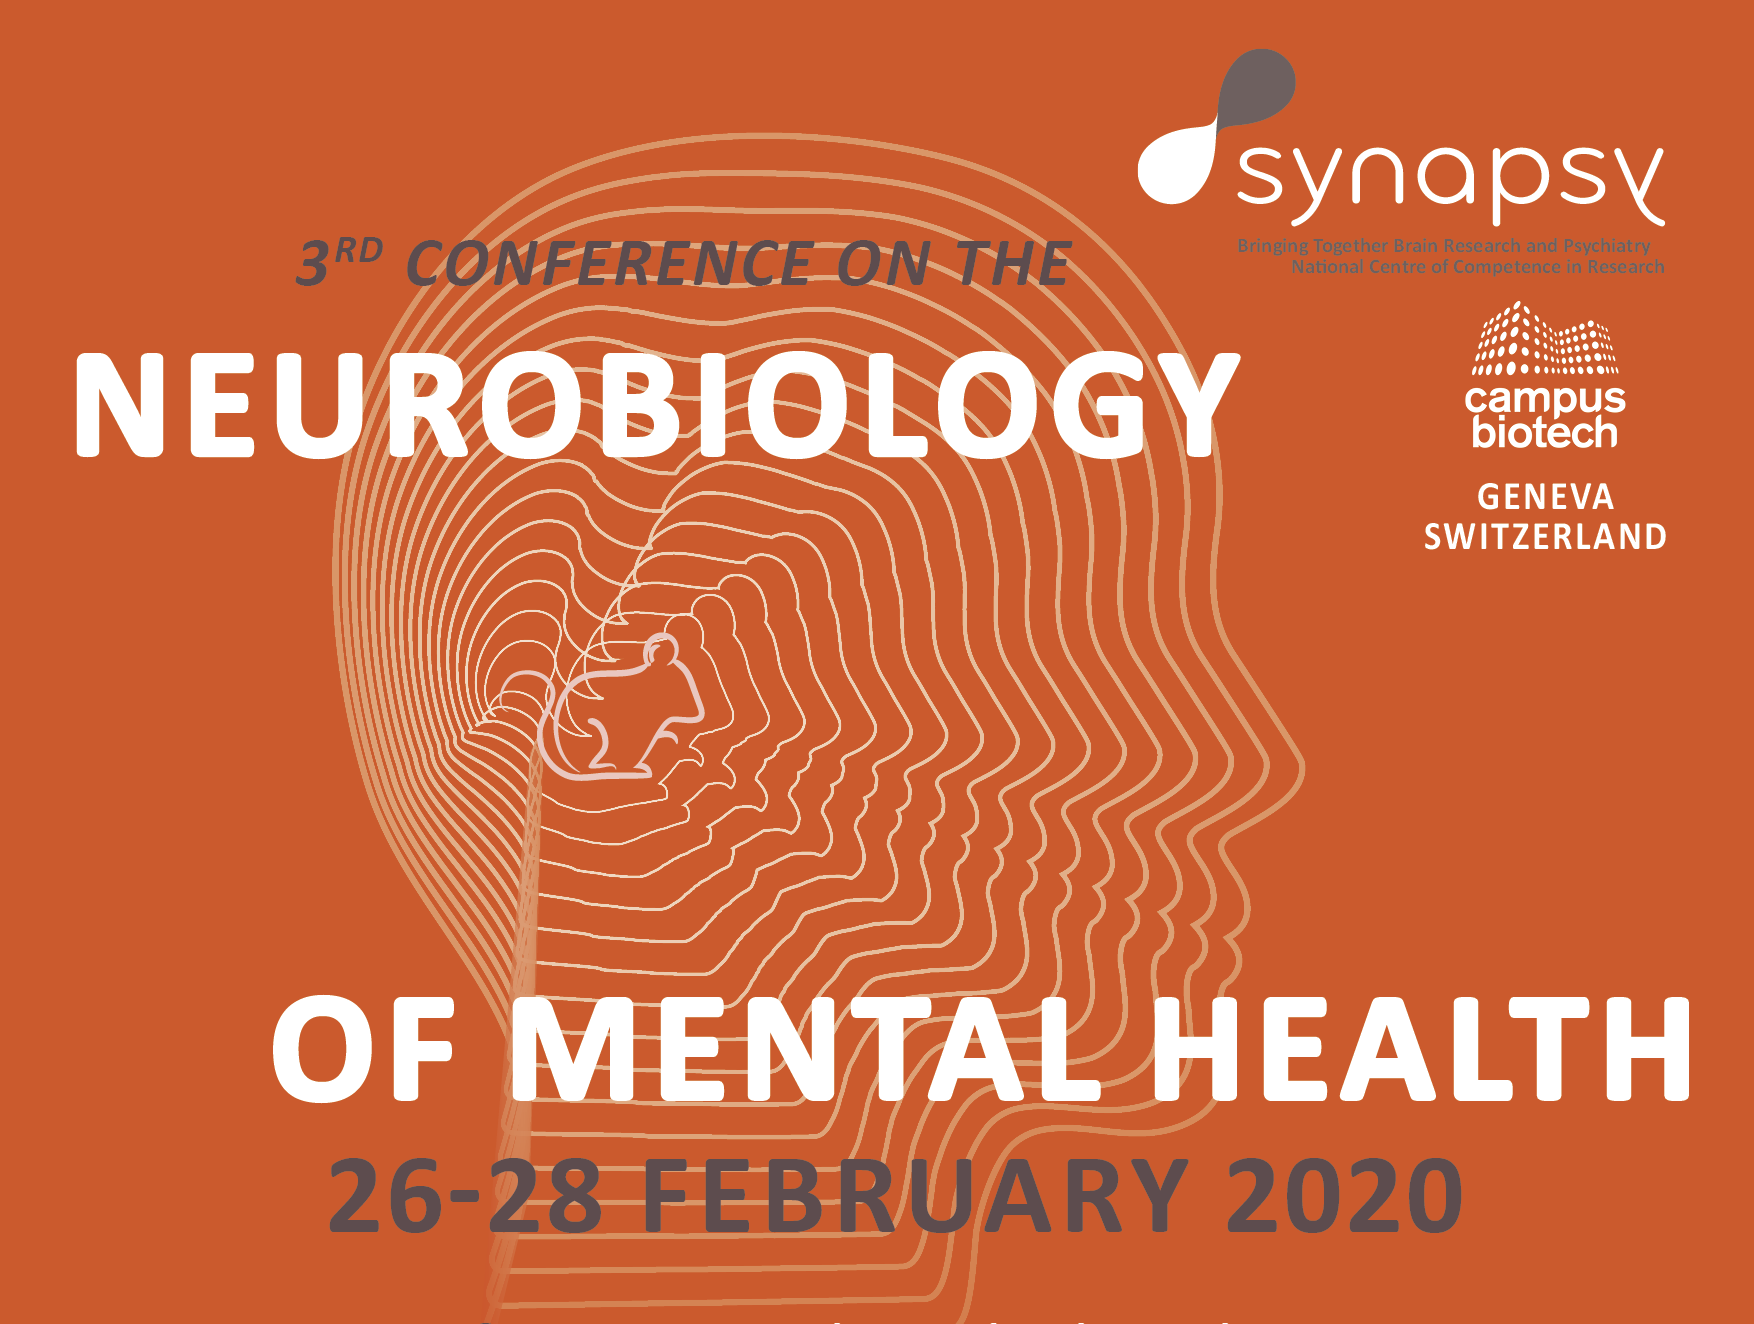 Invitation: 3rd Synapsy Conference on the Neurobiology of Mental Health